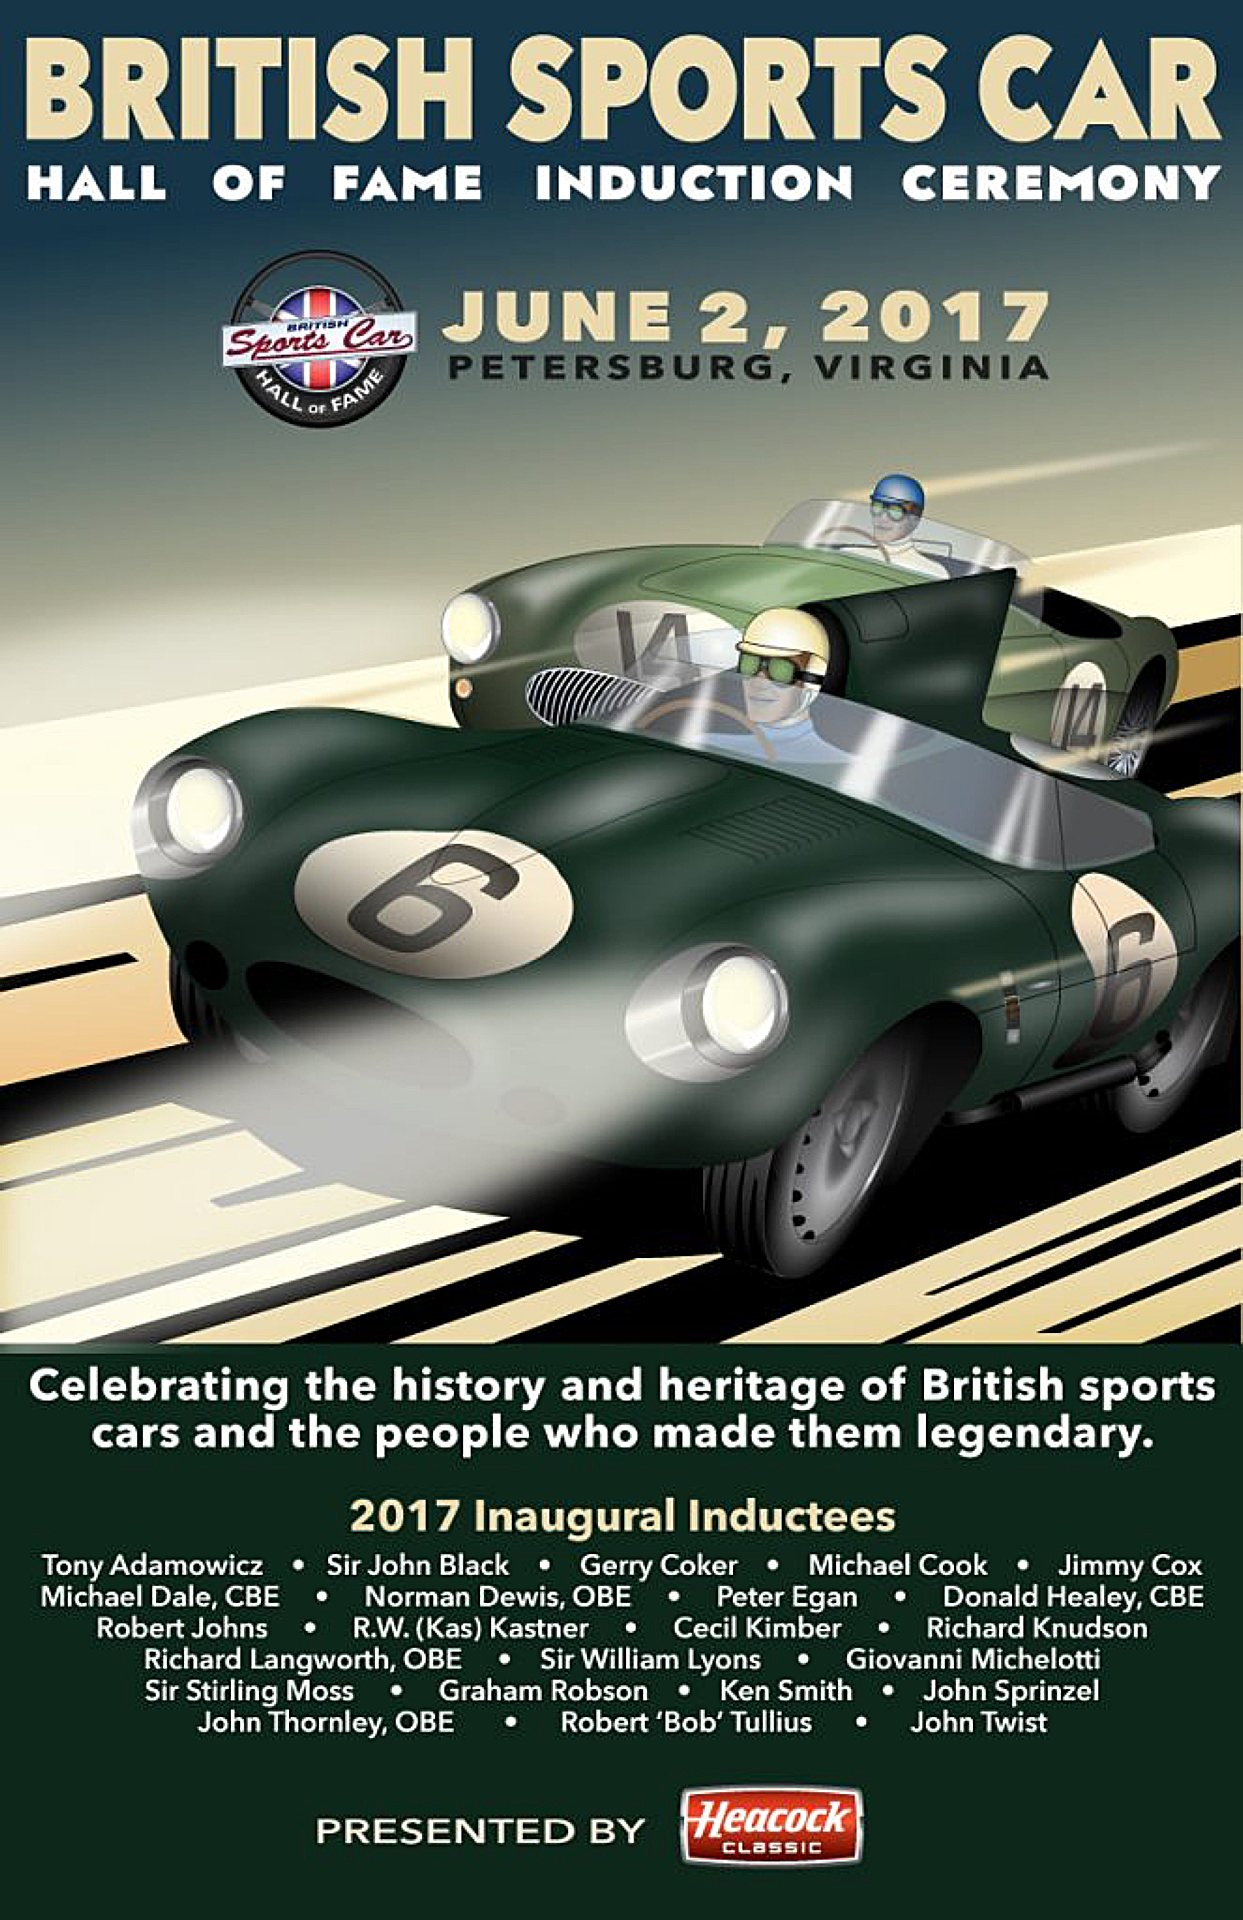 British Sports Car Hall of Fame Induction Ceremony - Just British